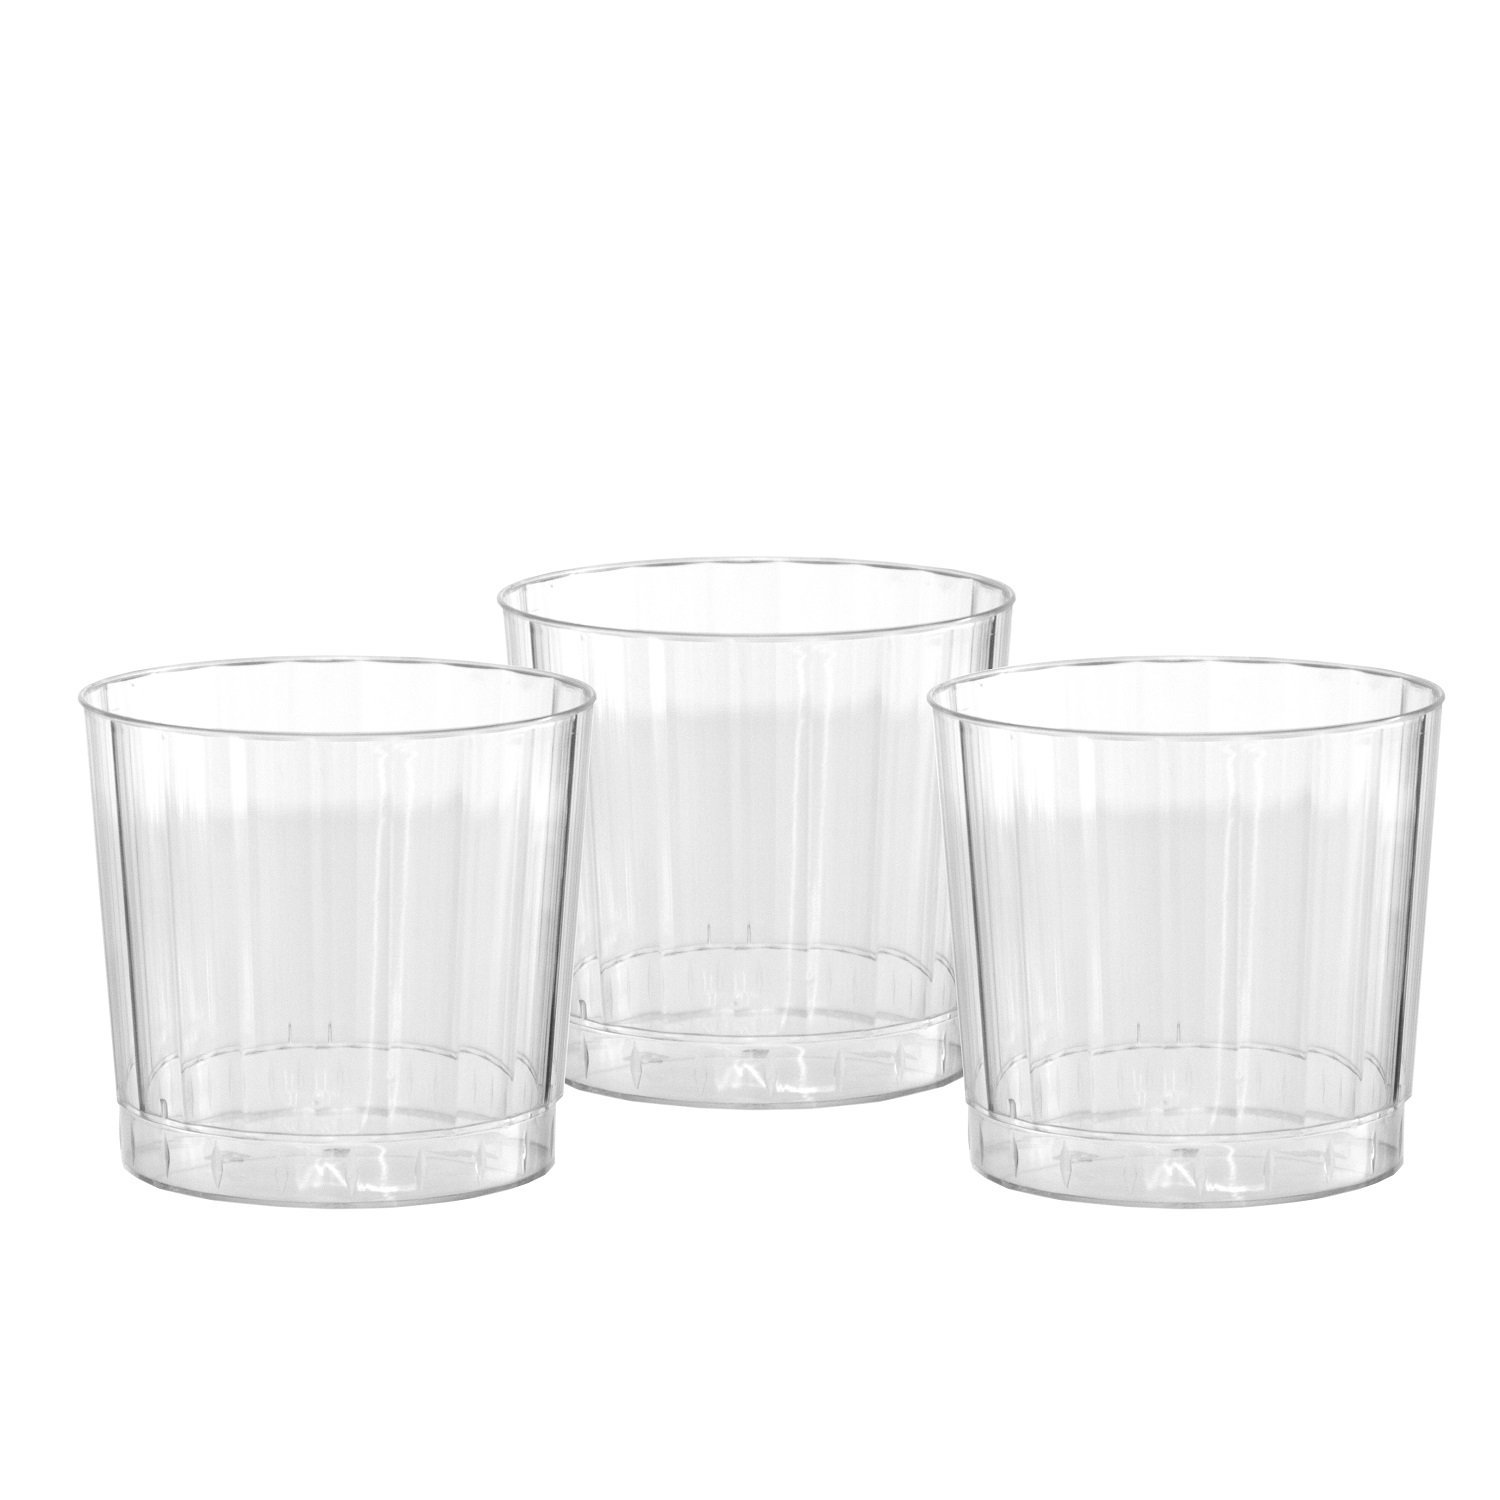 Party Essentials Deluxe/Elegance Hard Plastic 9-Ounce Party Cups/Old Fashioned Tumblers, 40-Count, Clear